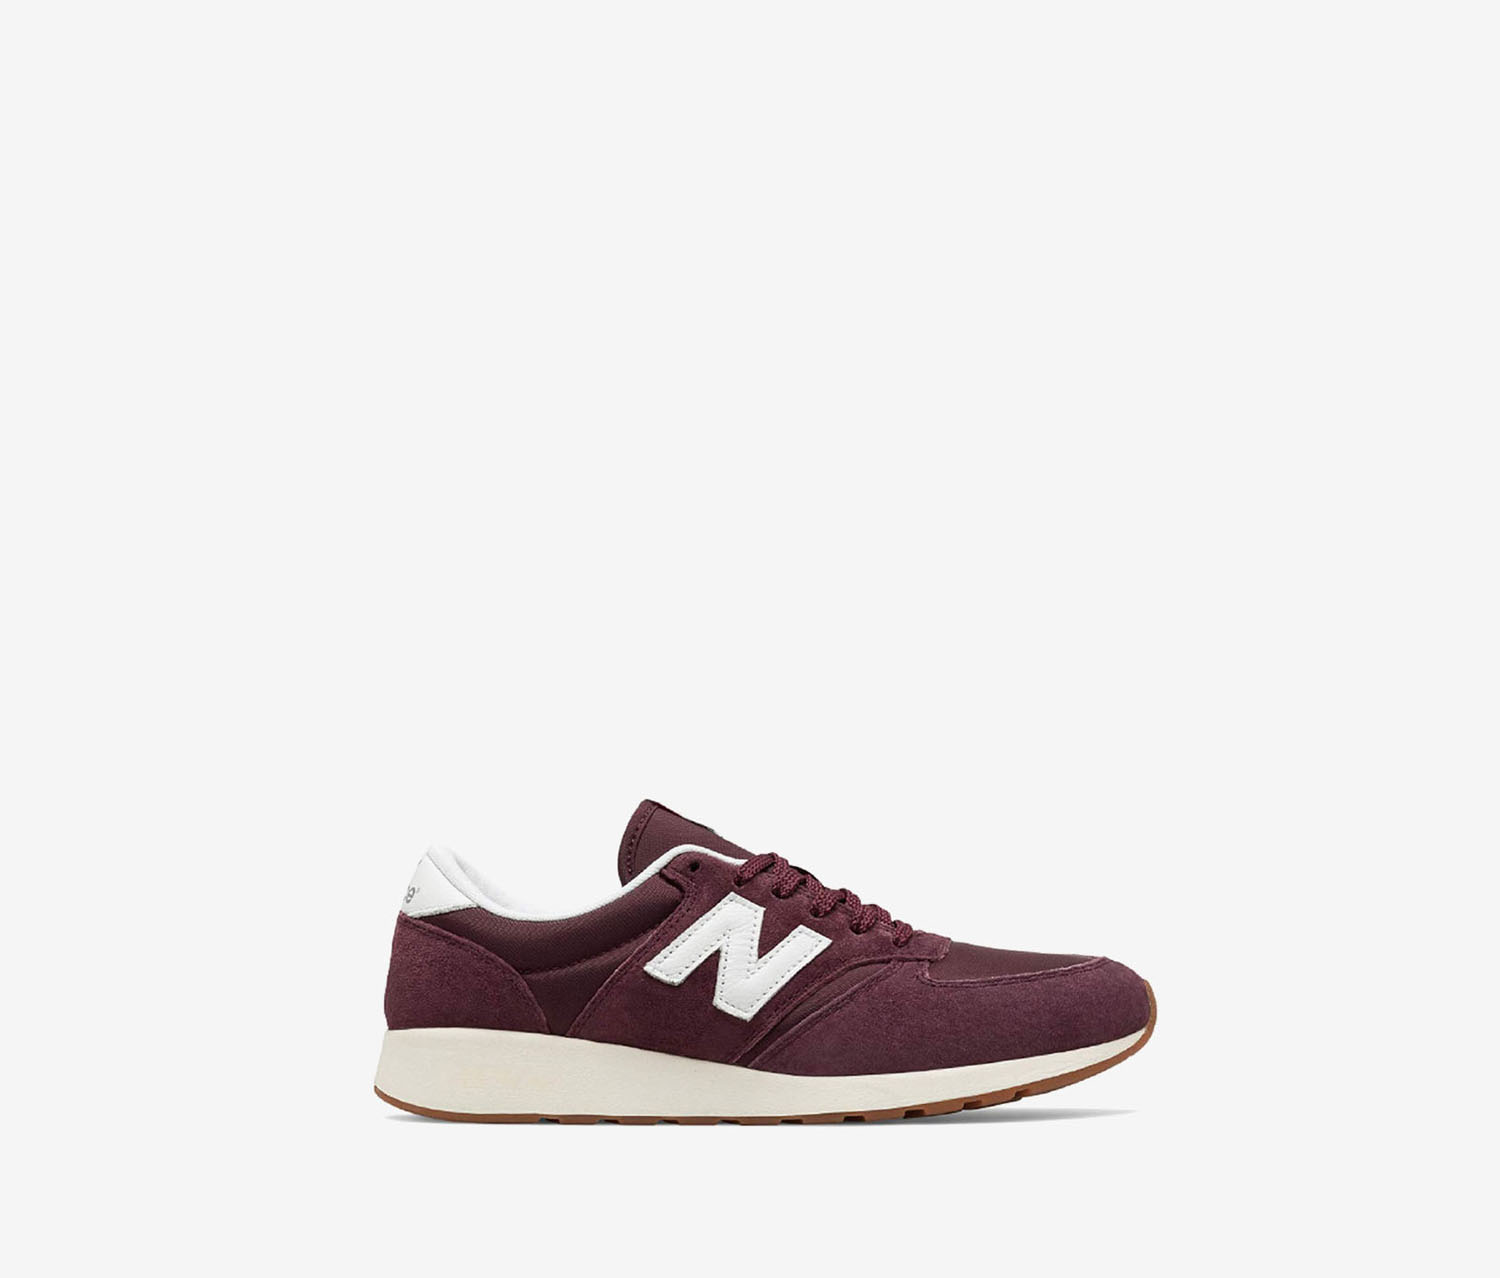 New Balance Men's Casual Shoes, Burgundy